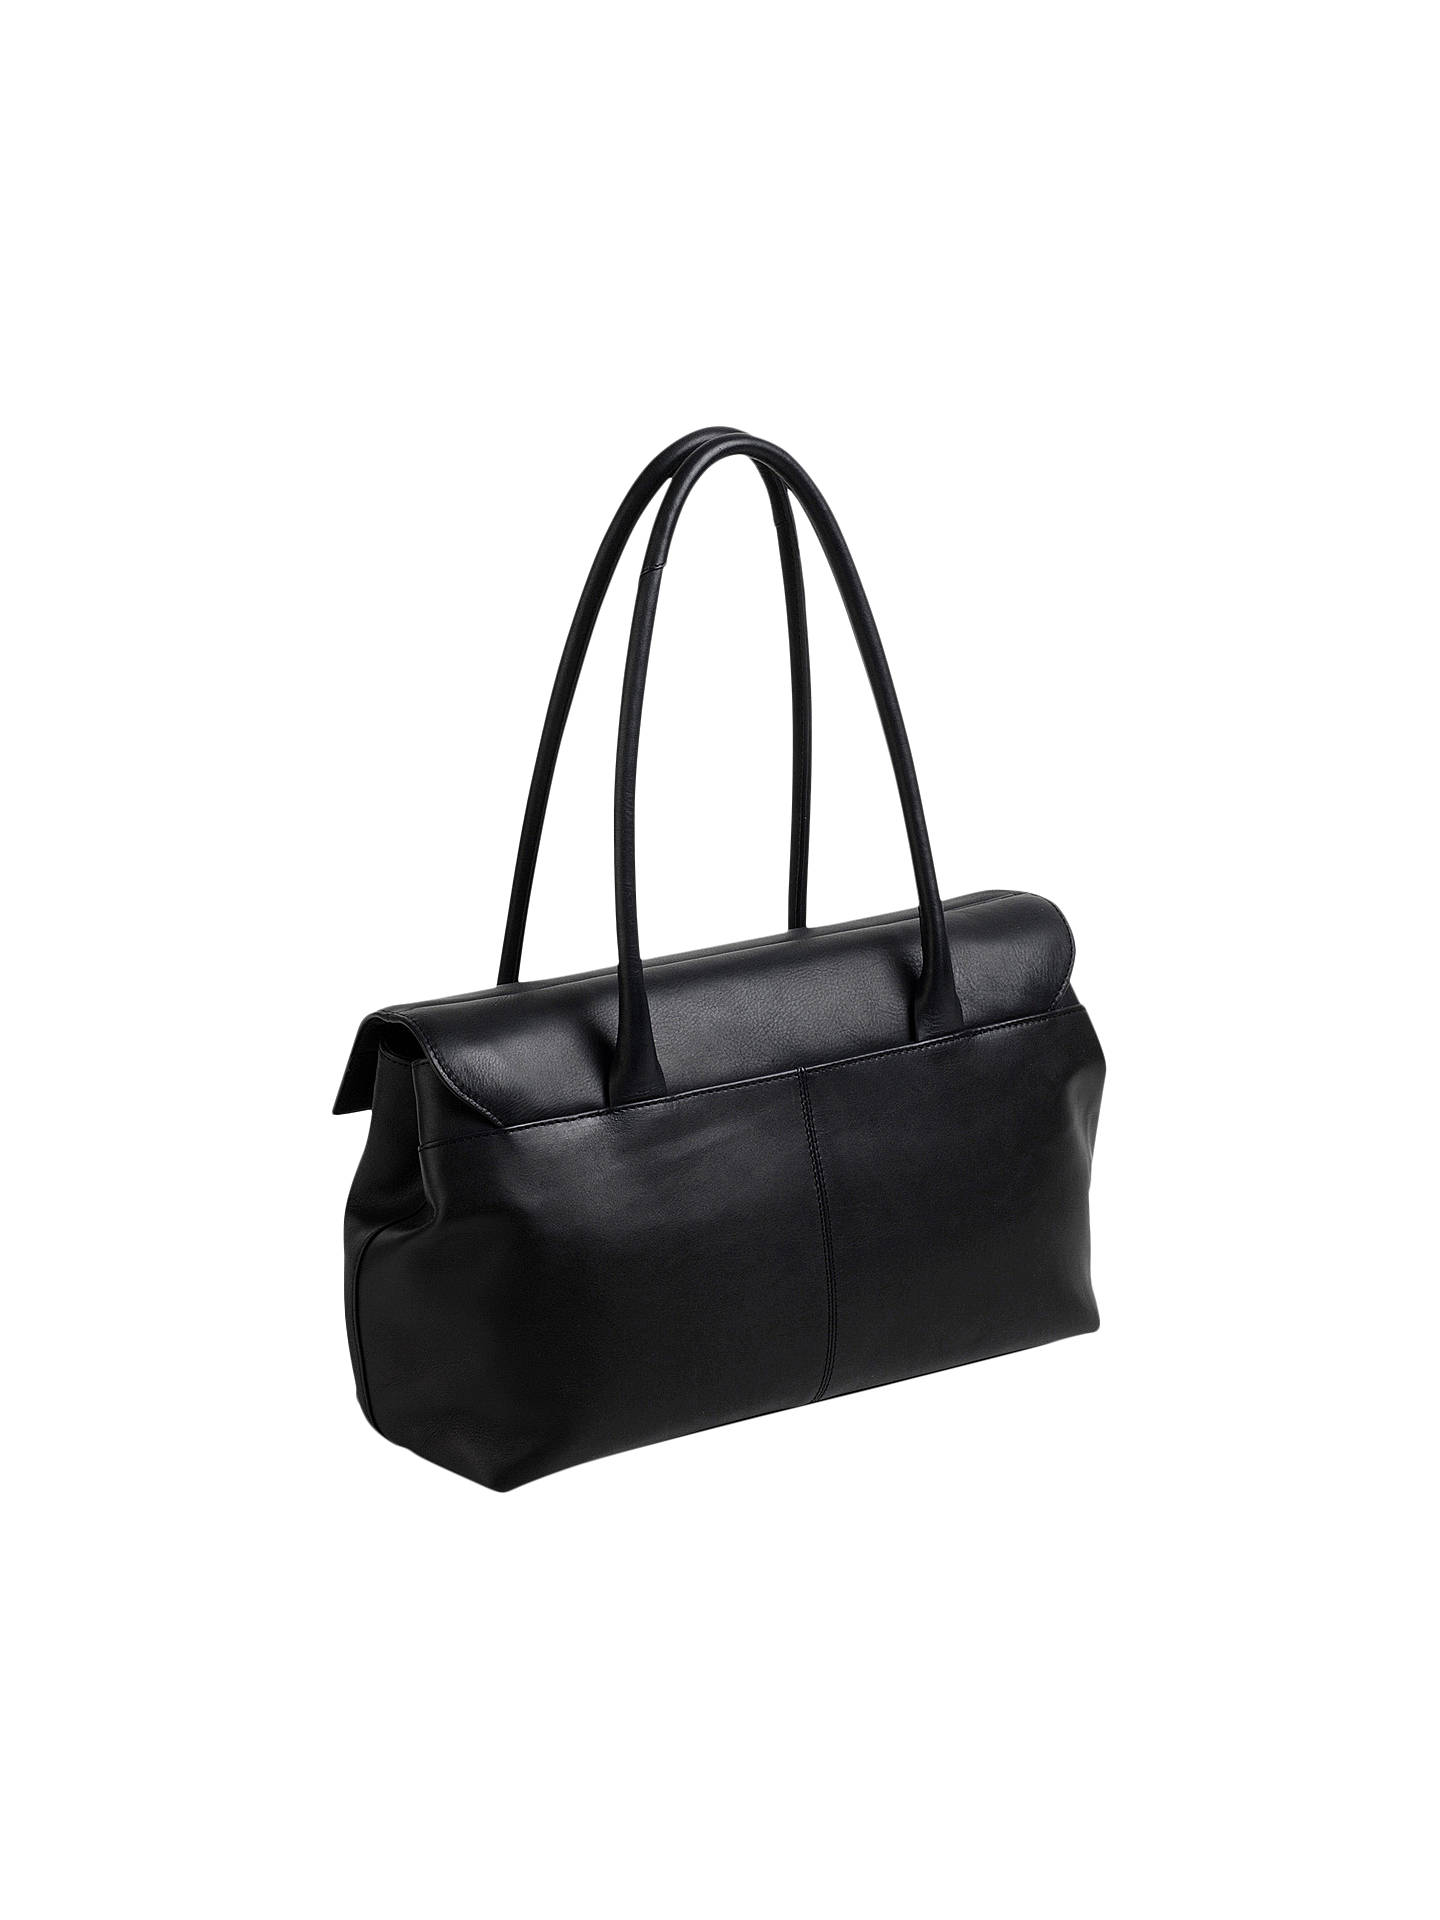 BuyRadley Burnham Beaches Leather Large Shoulder Bag, Black Online at johnlewis.com